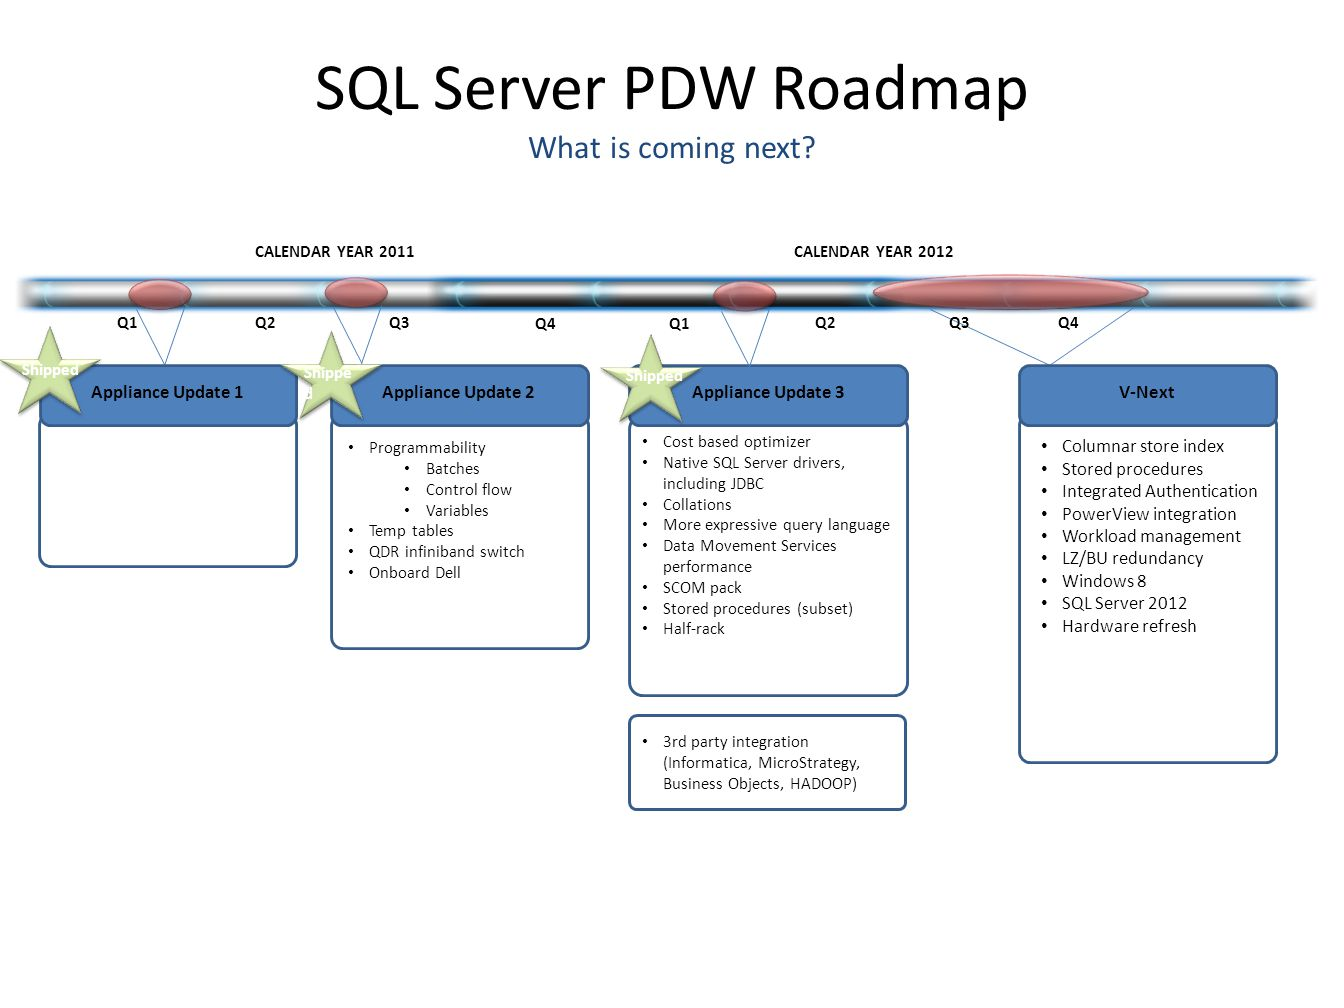 SQL Server PDW Roadmap What is coming next? Q1 Q2 Q3 Q4Q1 Q2 Improved node manageability Better performance and reduced overhead OEM requests Programm